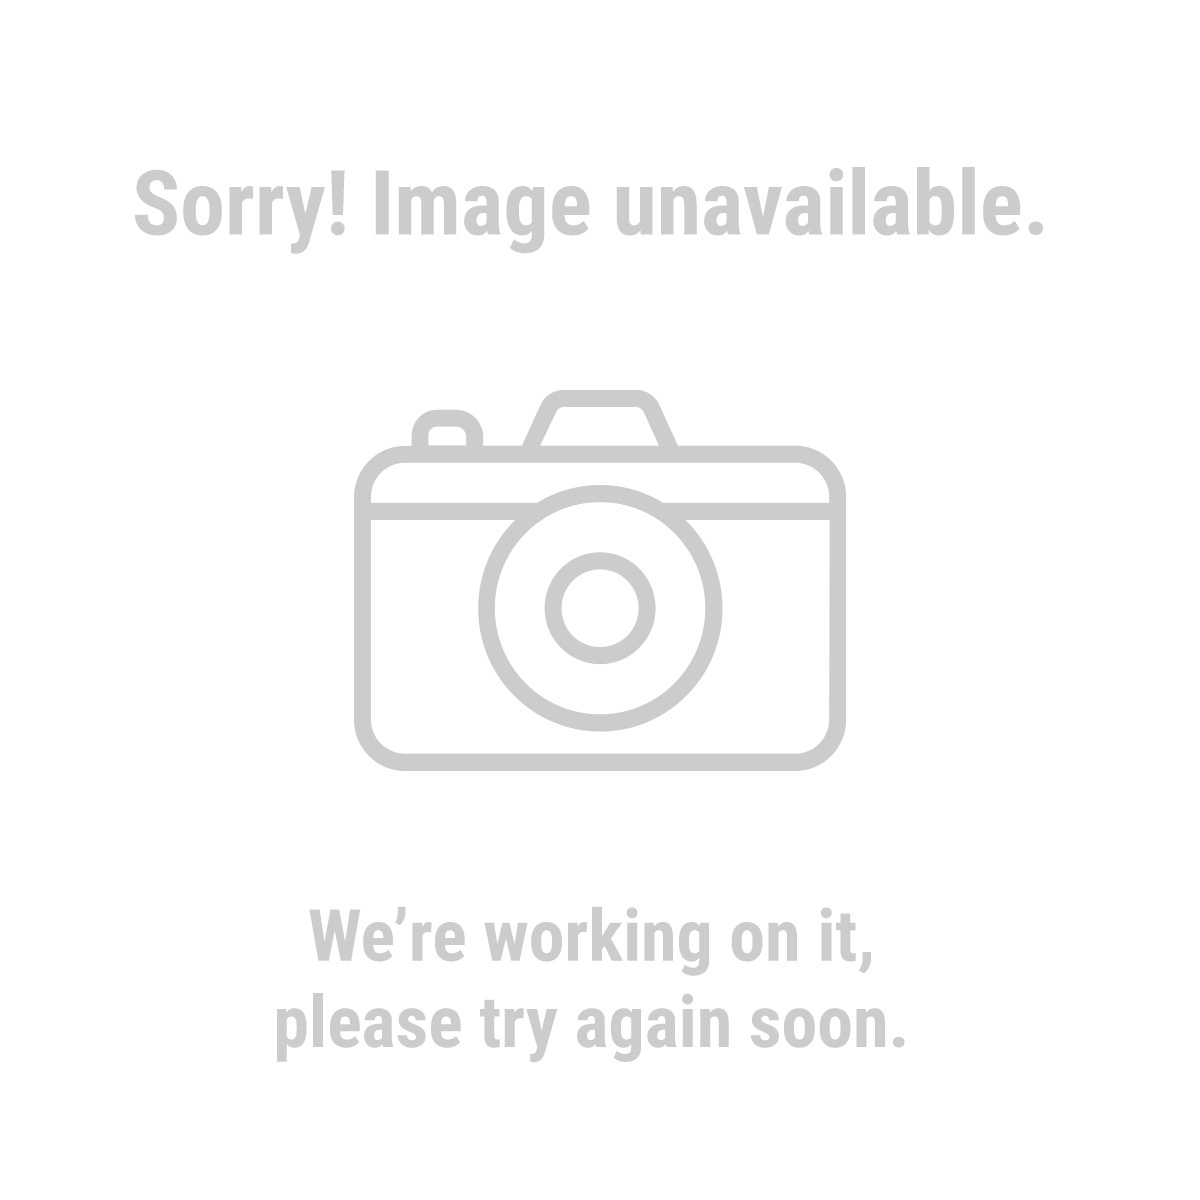 346cc OHV Horizontal Shaft Gas Engine - EPA